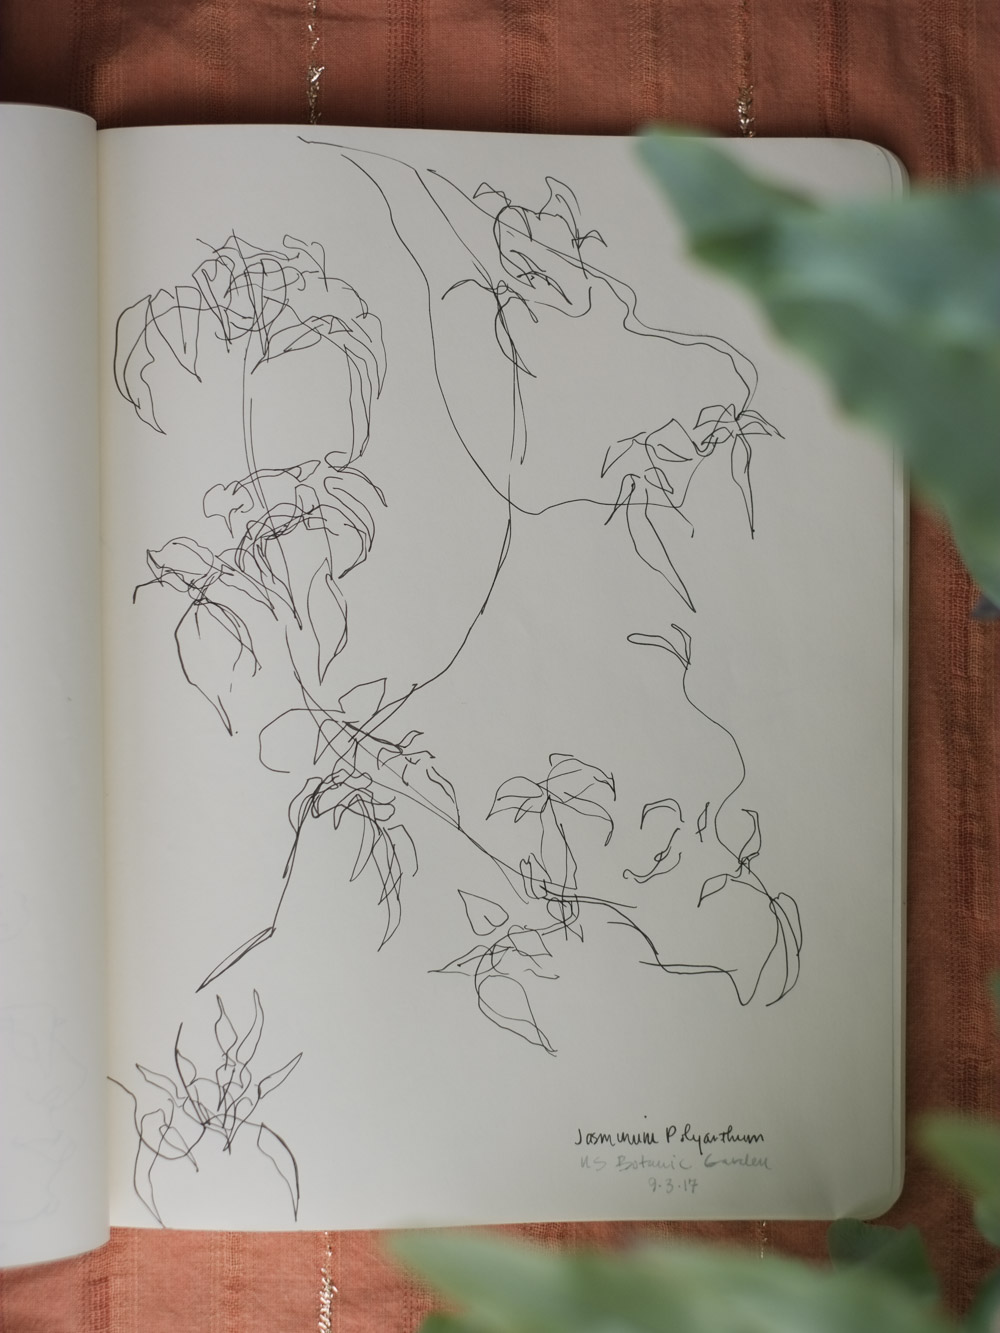 Erin_Ellis_daily_botanical_blind_drawings_sept_2017.jpg-3.jpg